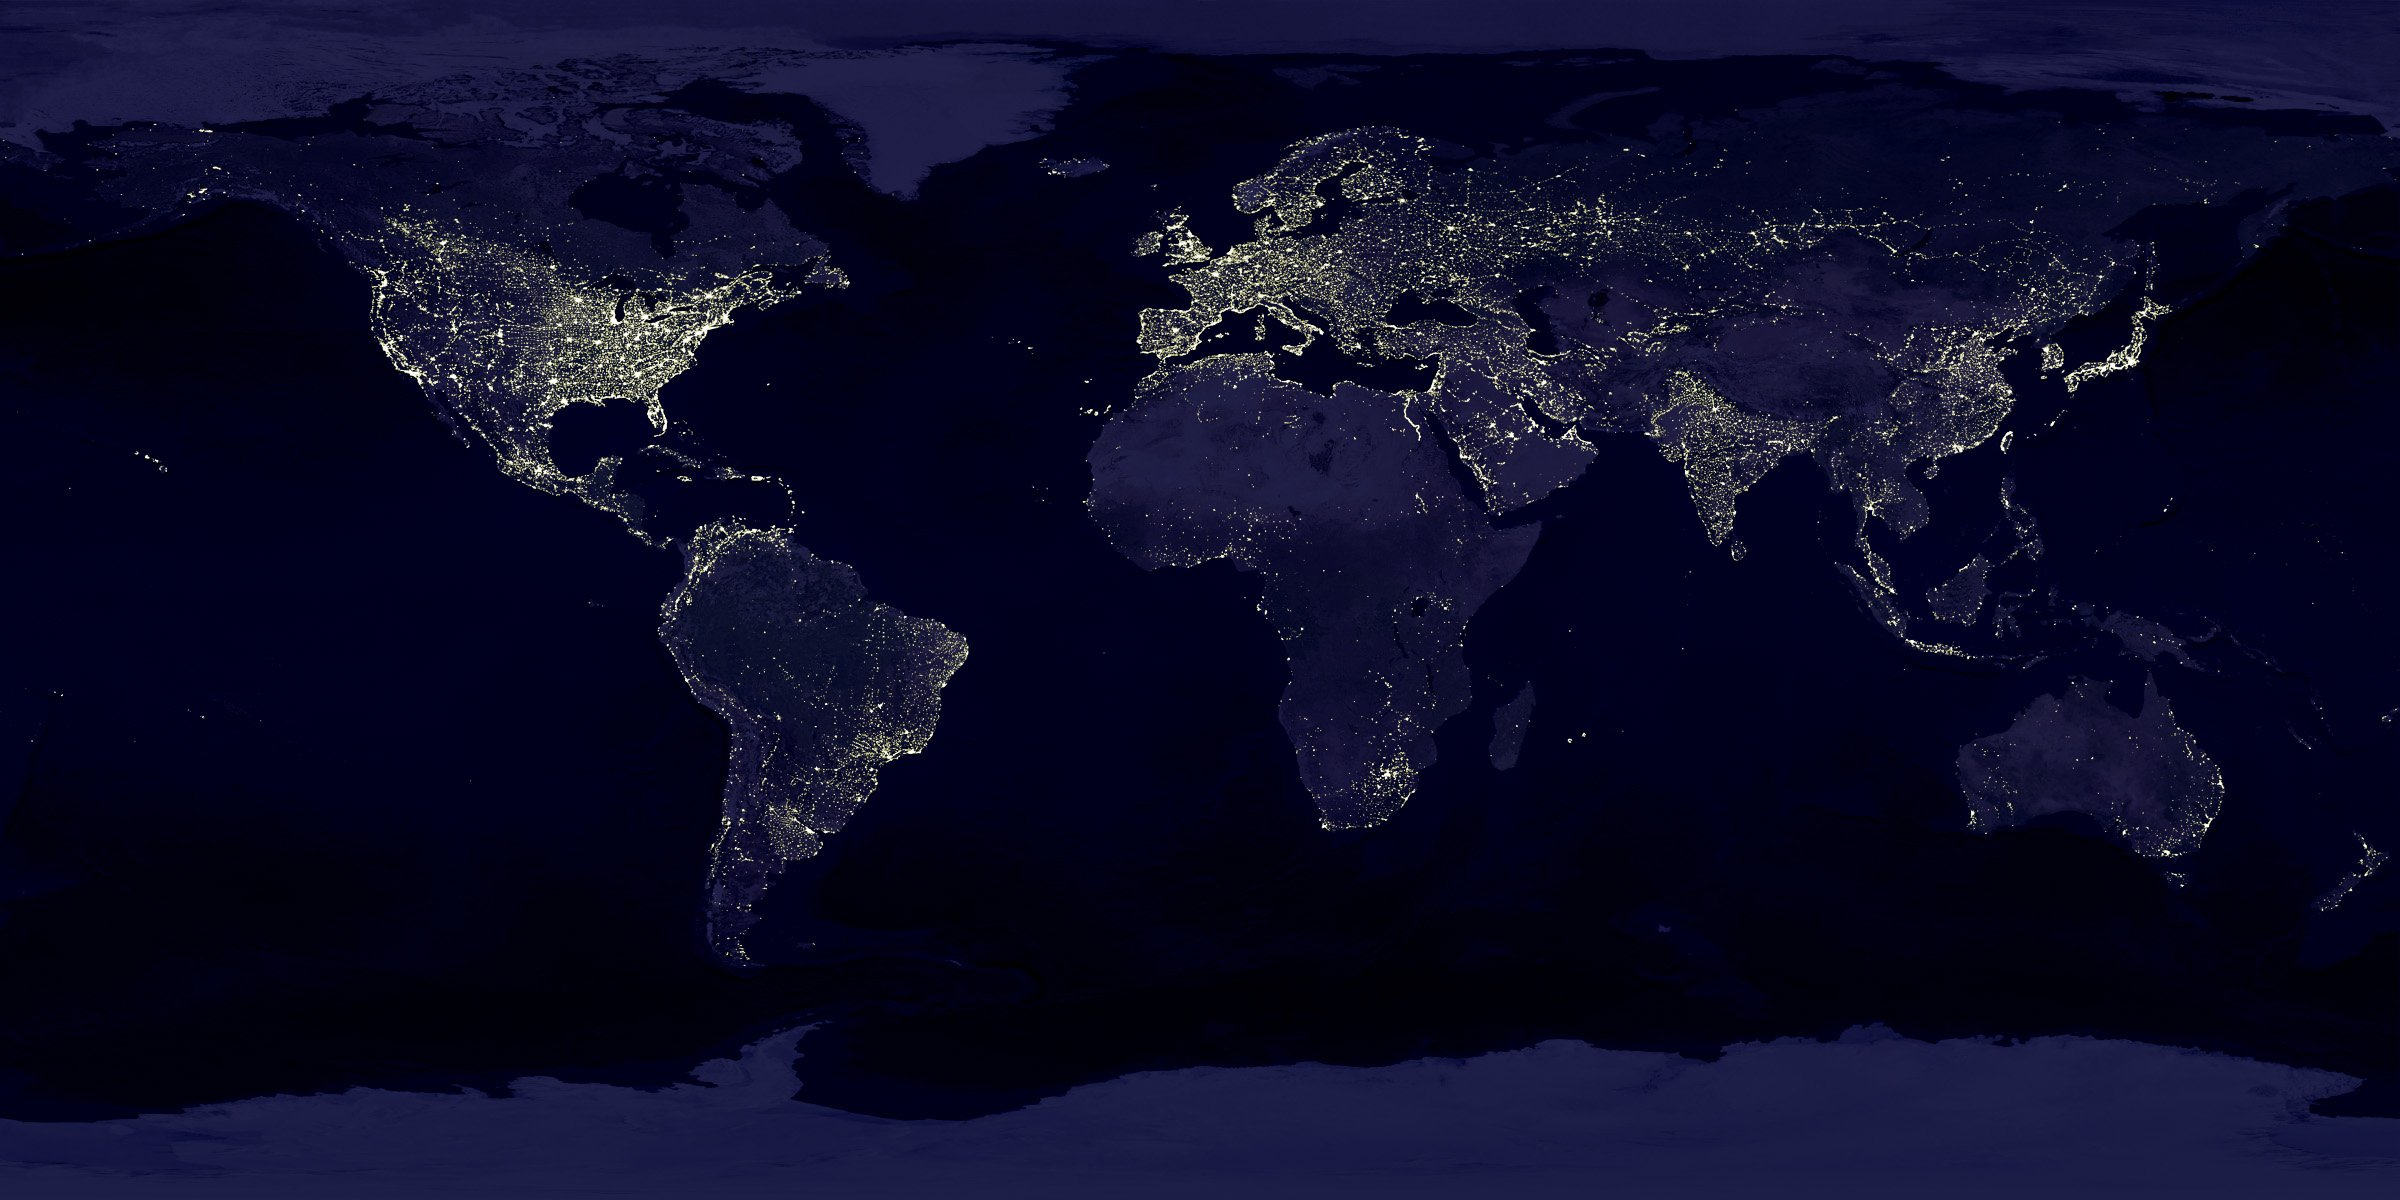 Daily wallpaper earth at night i like to waste my time voltagebd Images